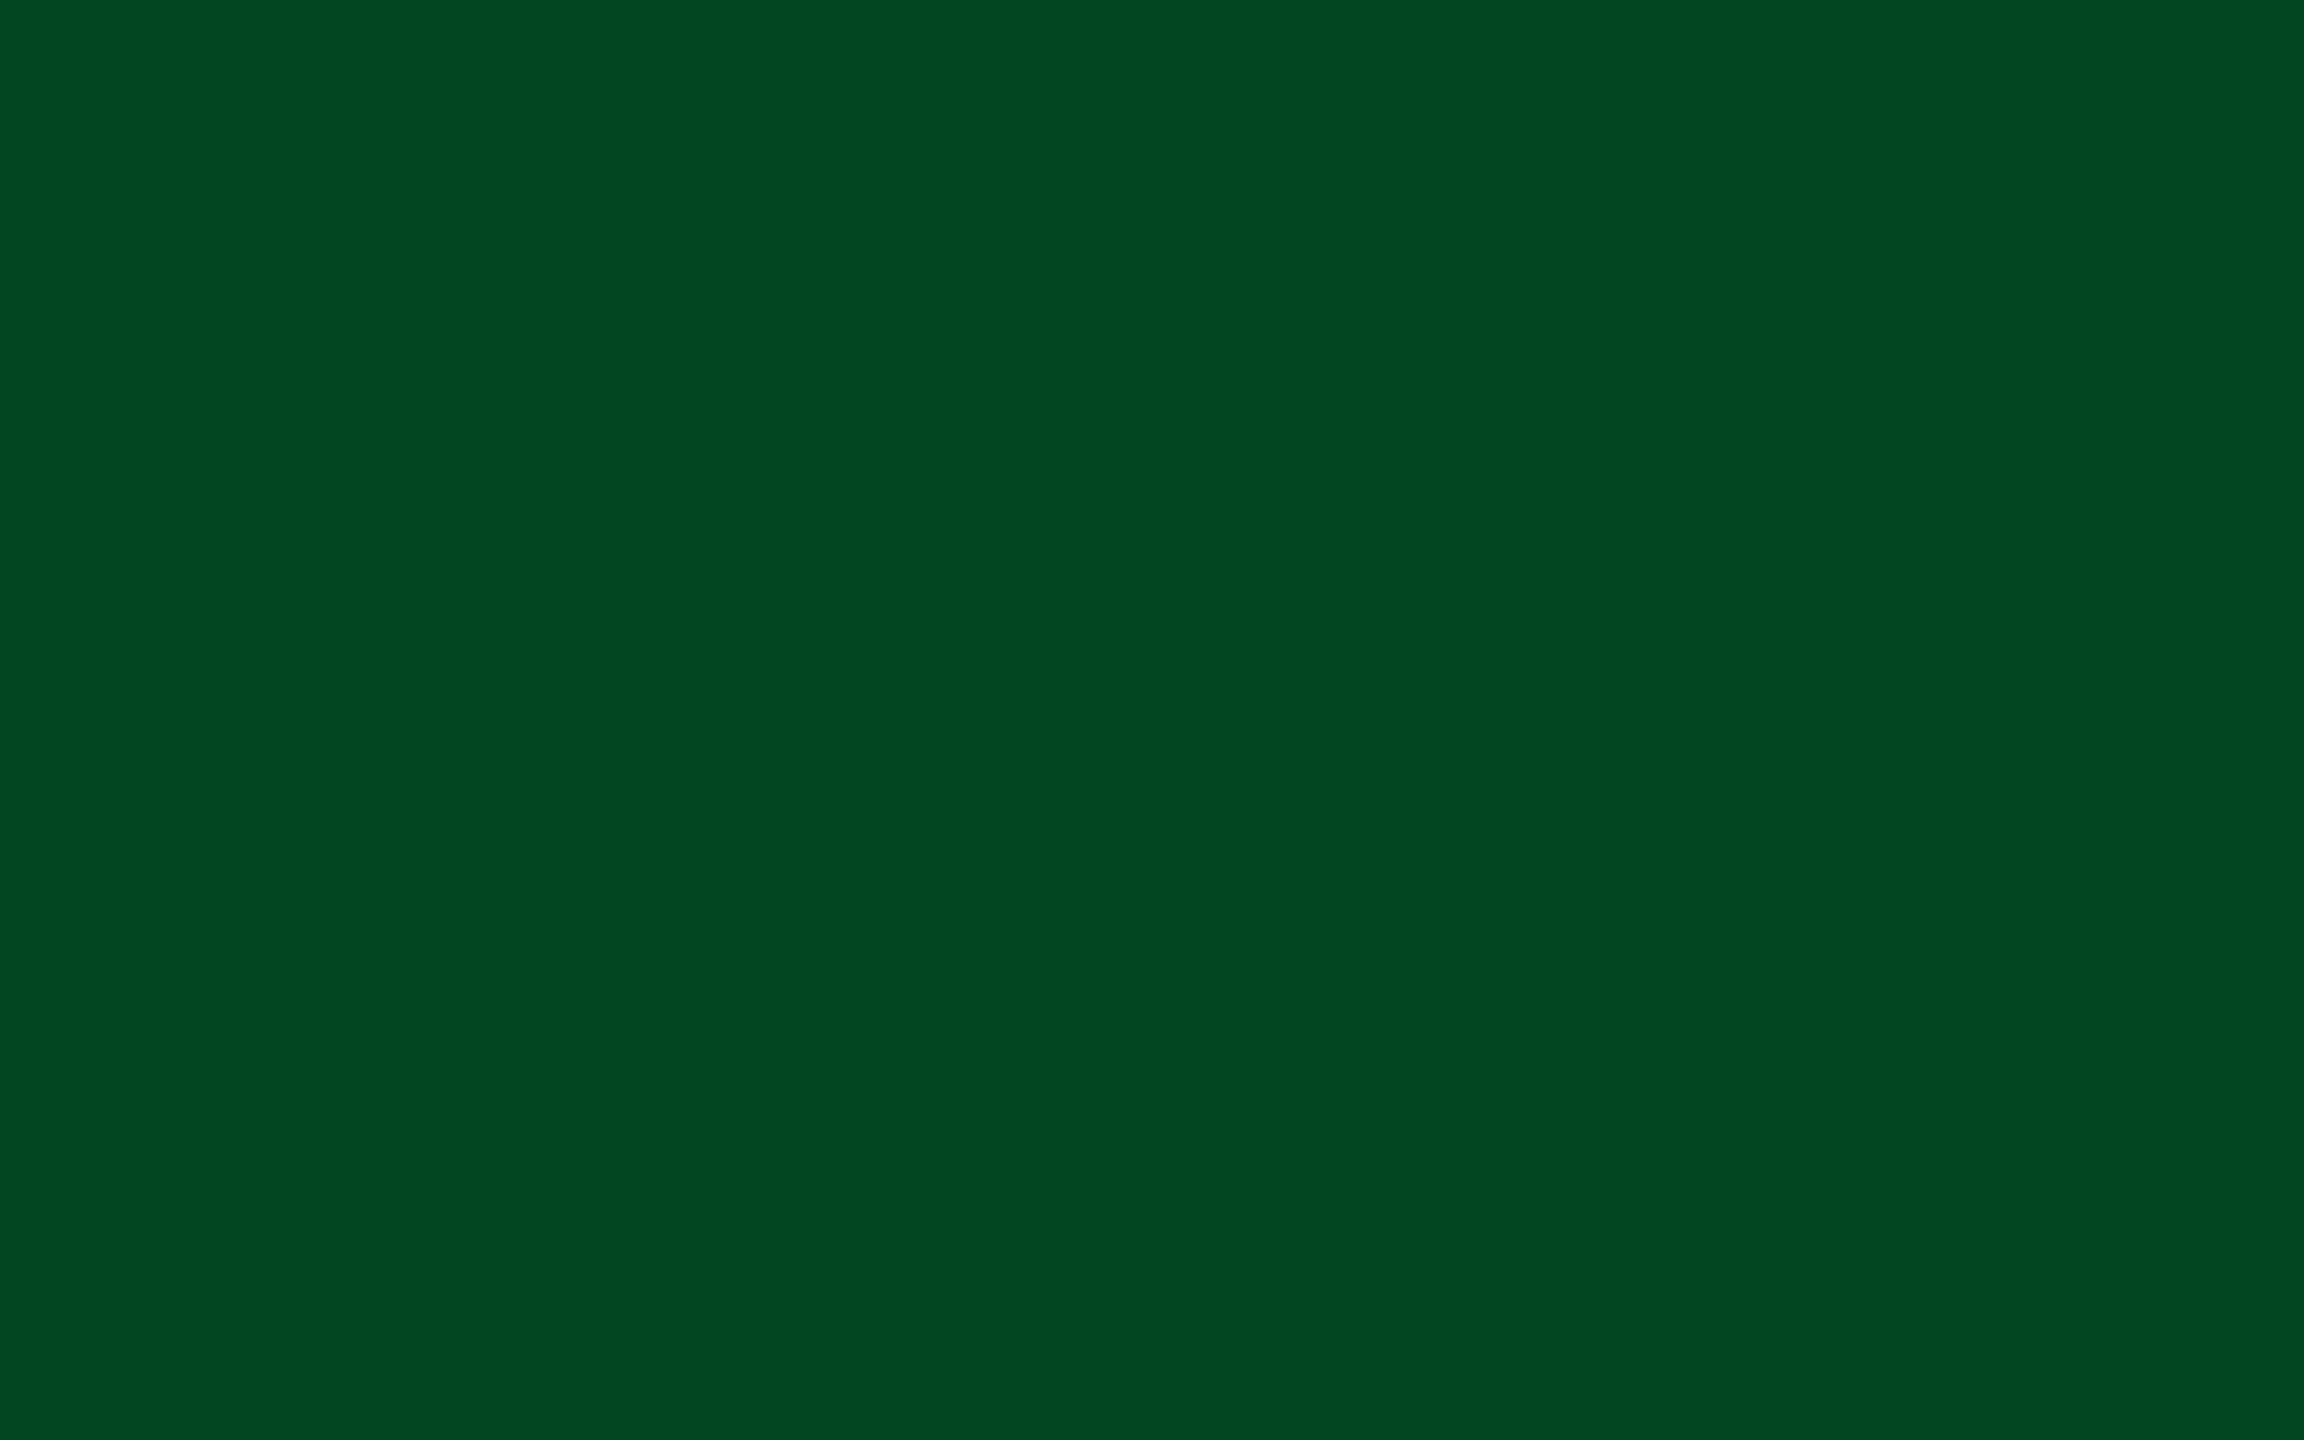 2304x1440 Forest Green Traditional Solid Color Background